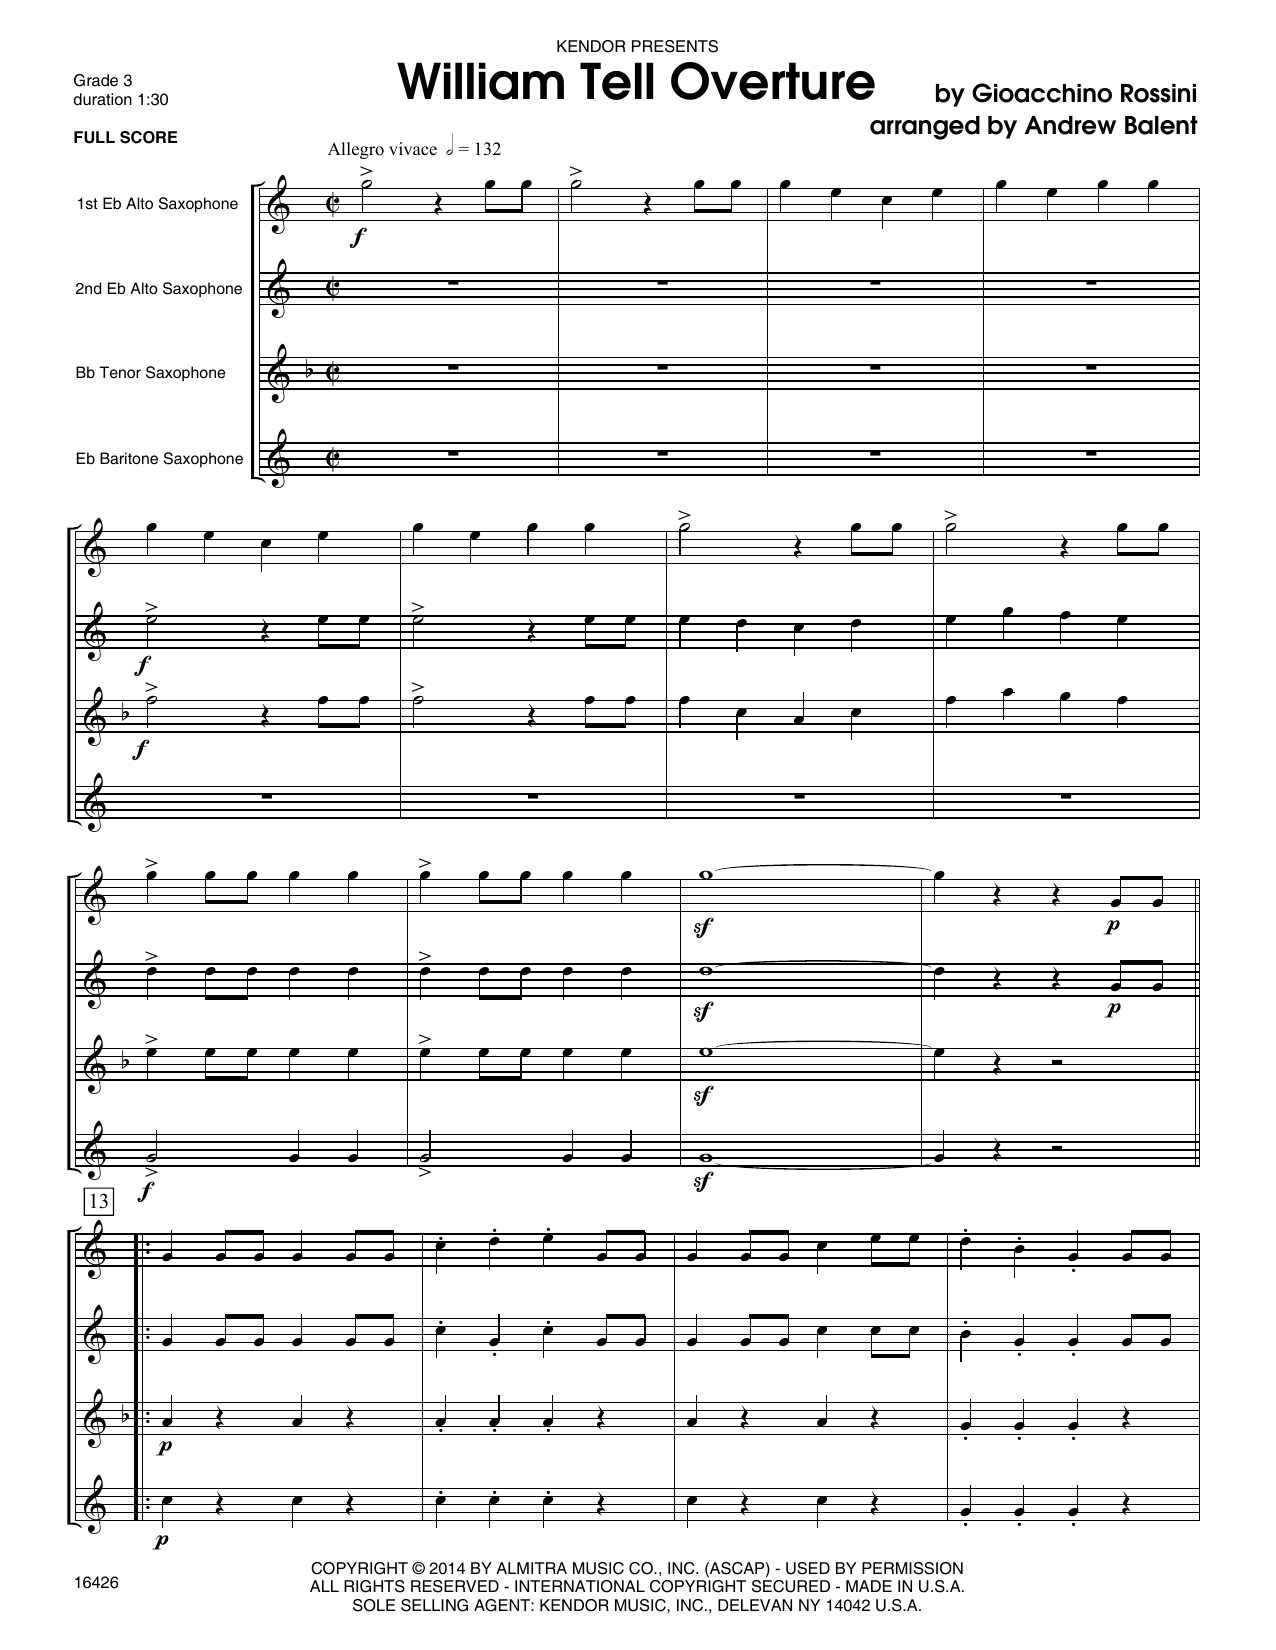 William Tell Overture (COMPLETE) sheet music for saxophone quartet by Andrew Balent